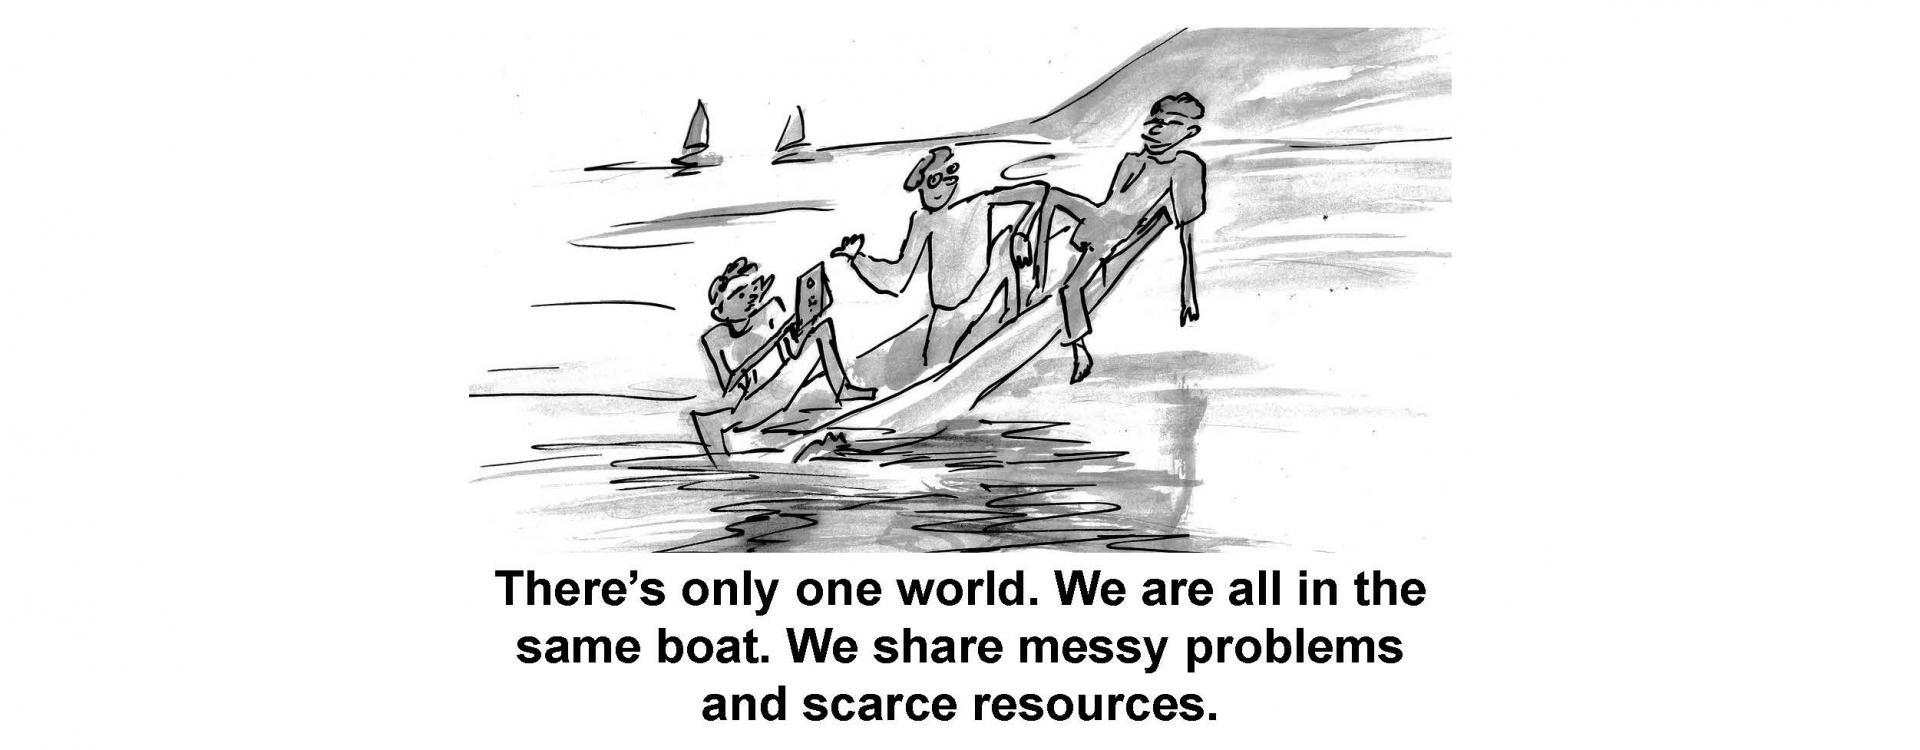 There is only one world. We are all in the same boat. We share messy problems and scarce resources.